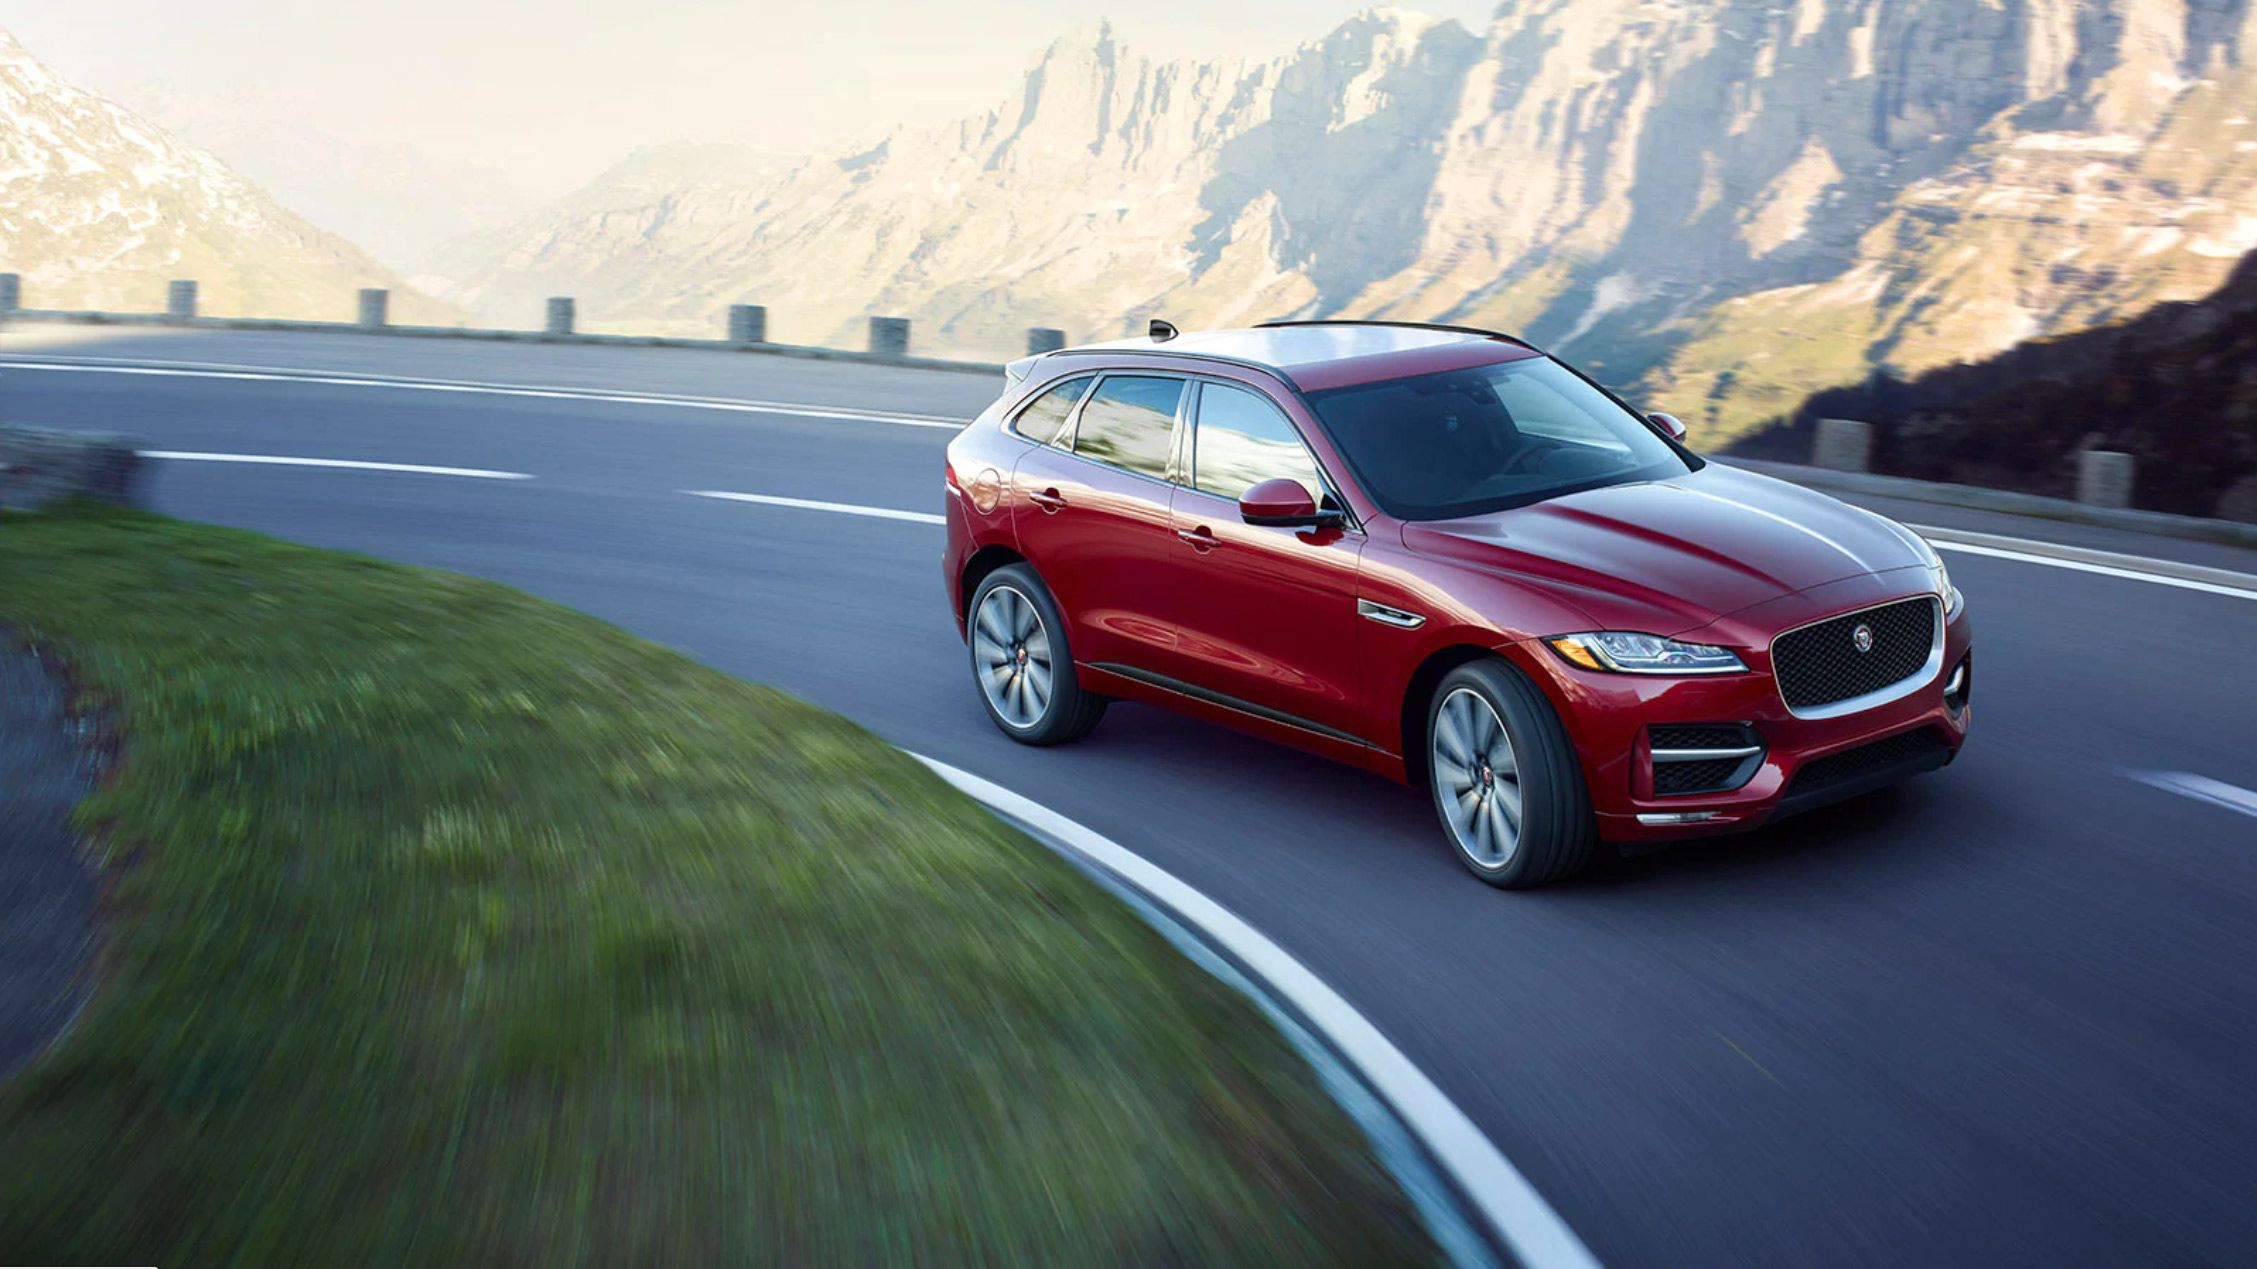 2020 Jaguar Suv Release Date and Concept